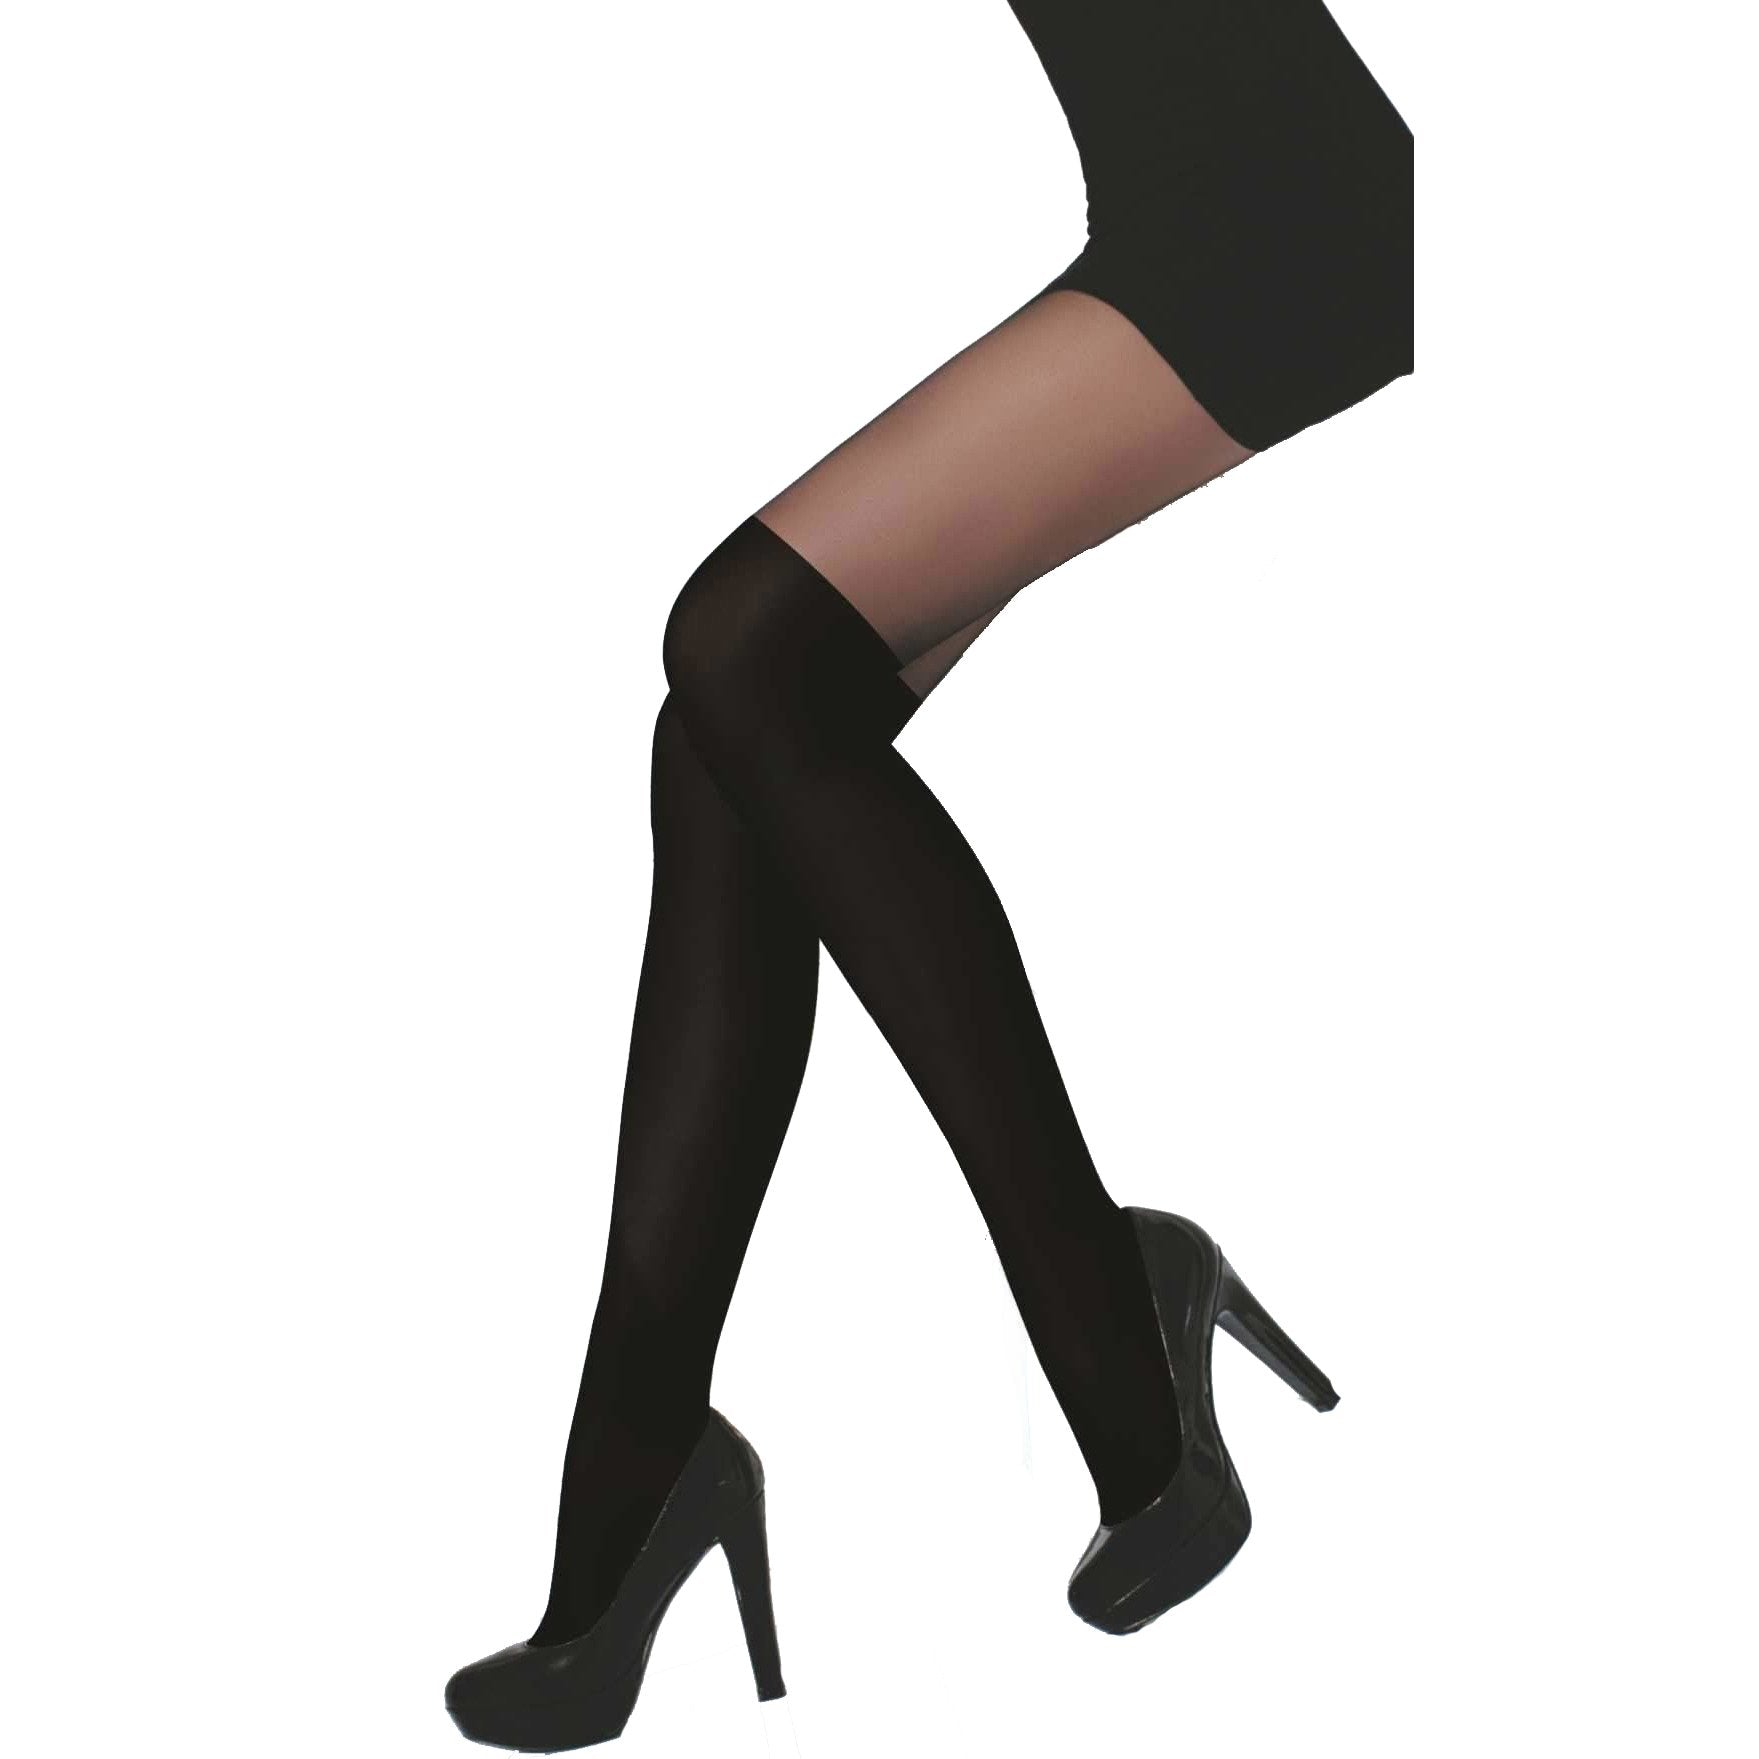 4ae9e37d268a2 Farell Paris - One piece tights Hosiery Made in France